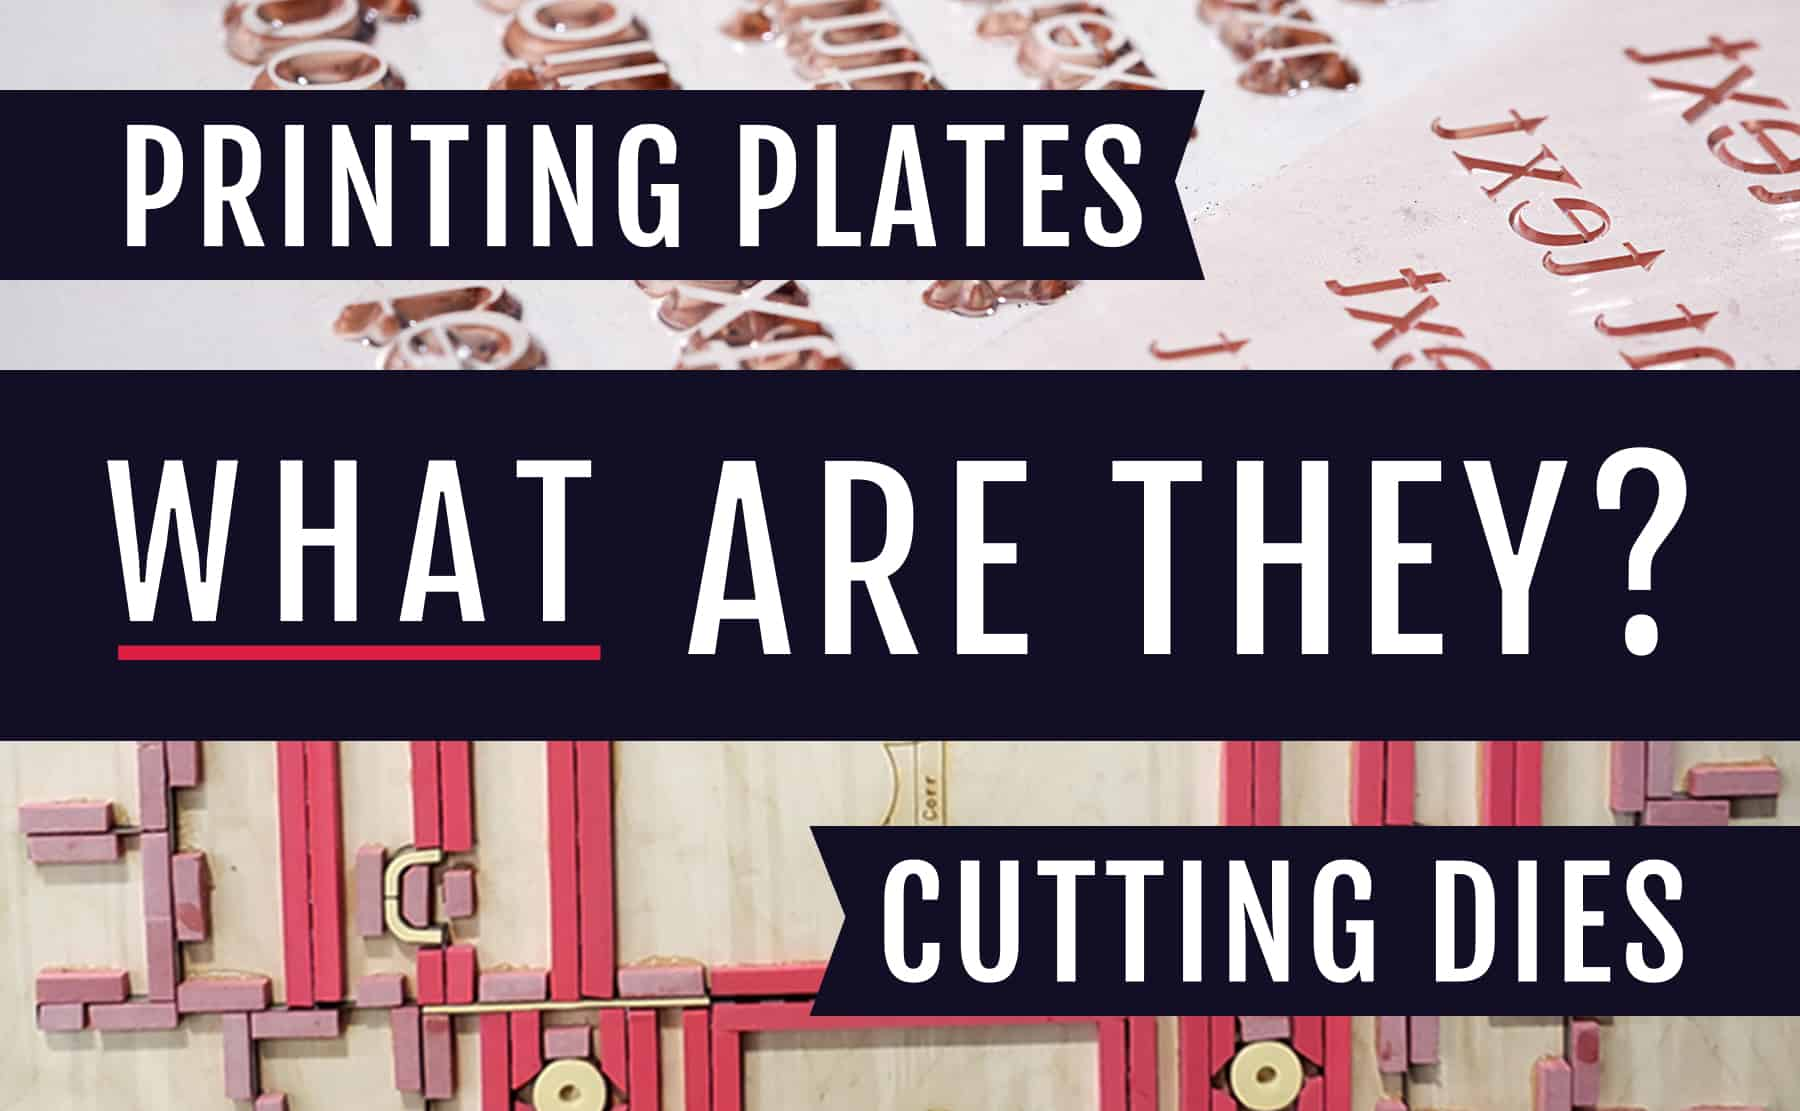 Printing plates, cutting dies, what are they?